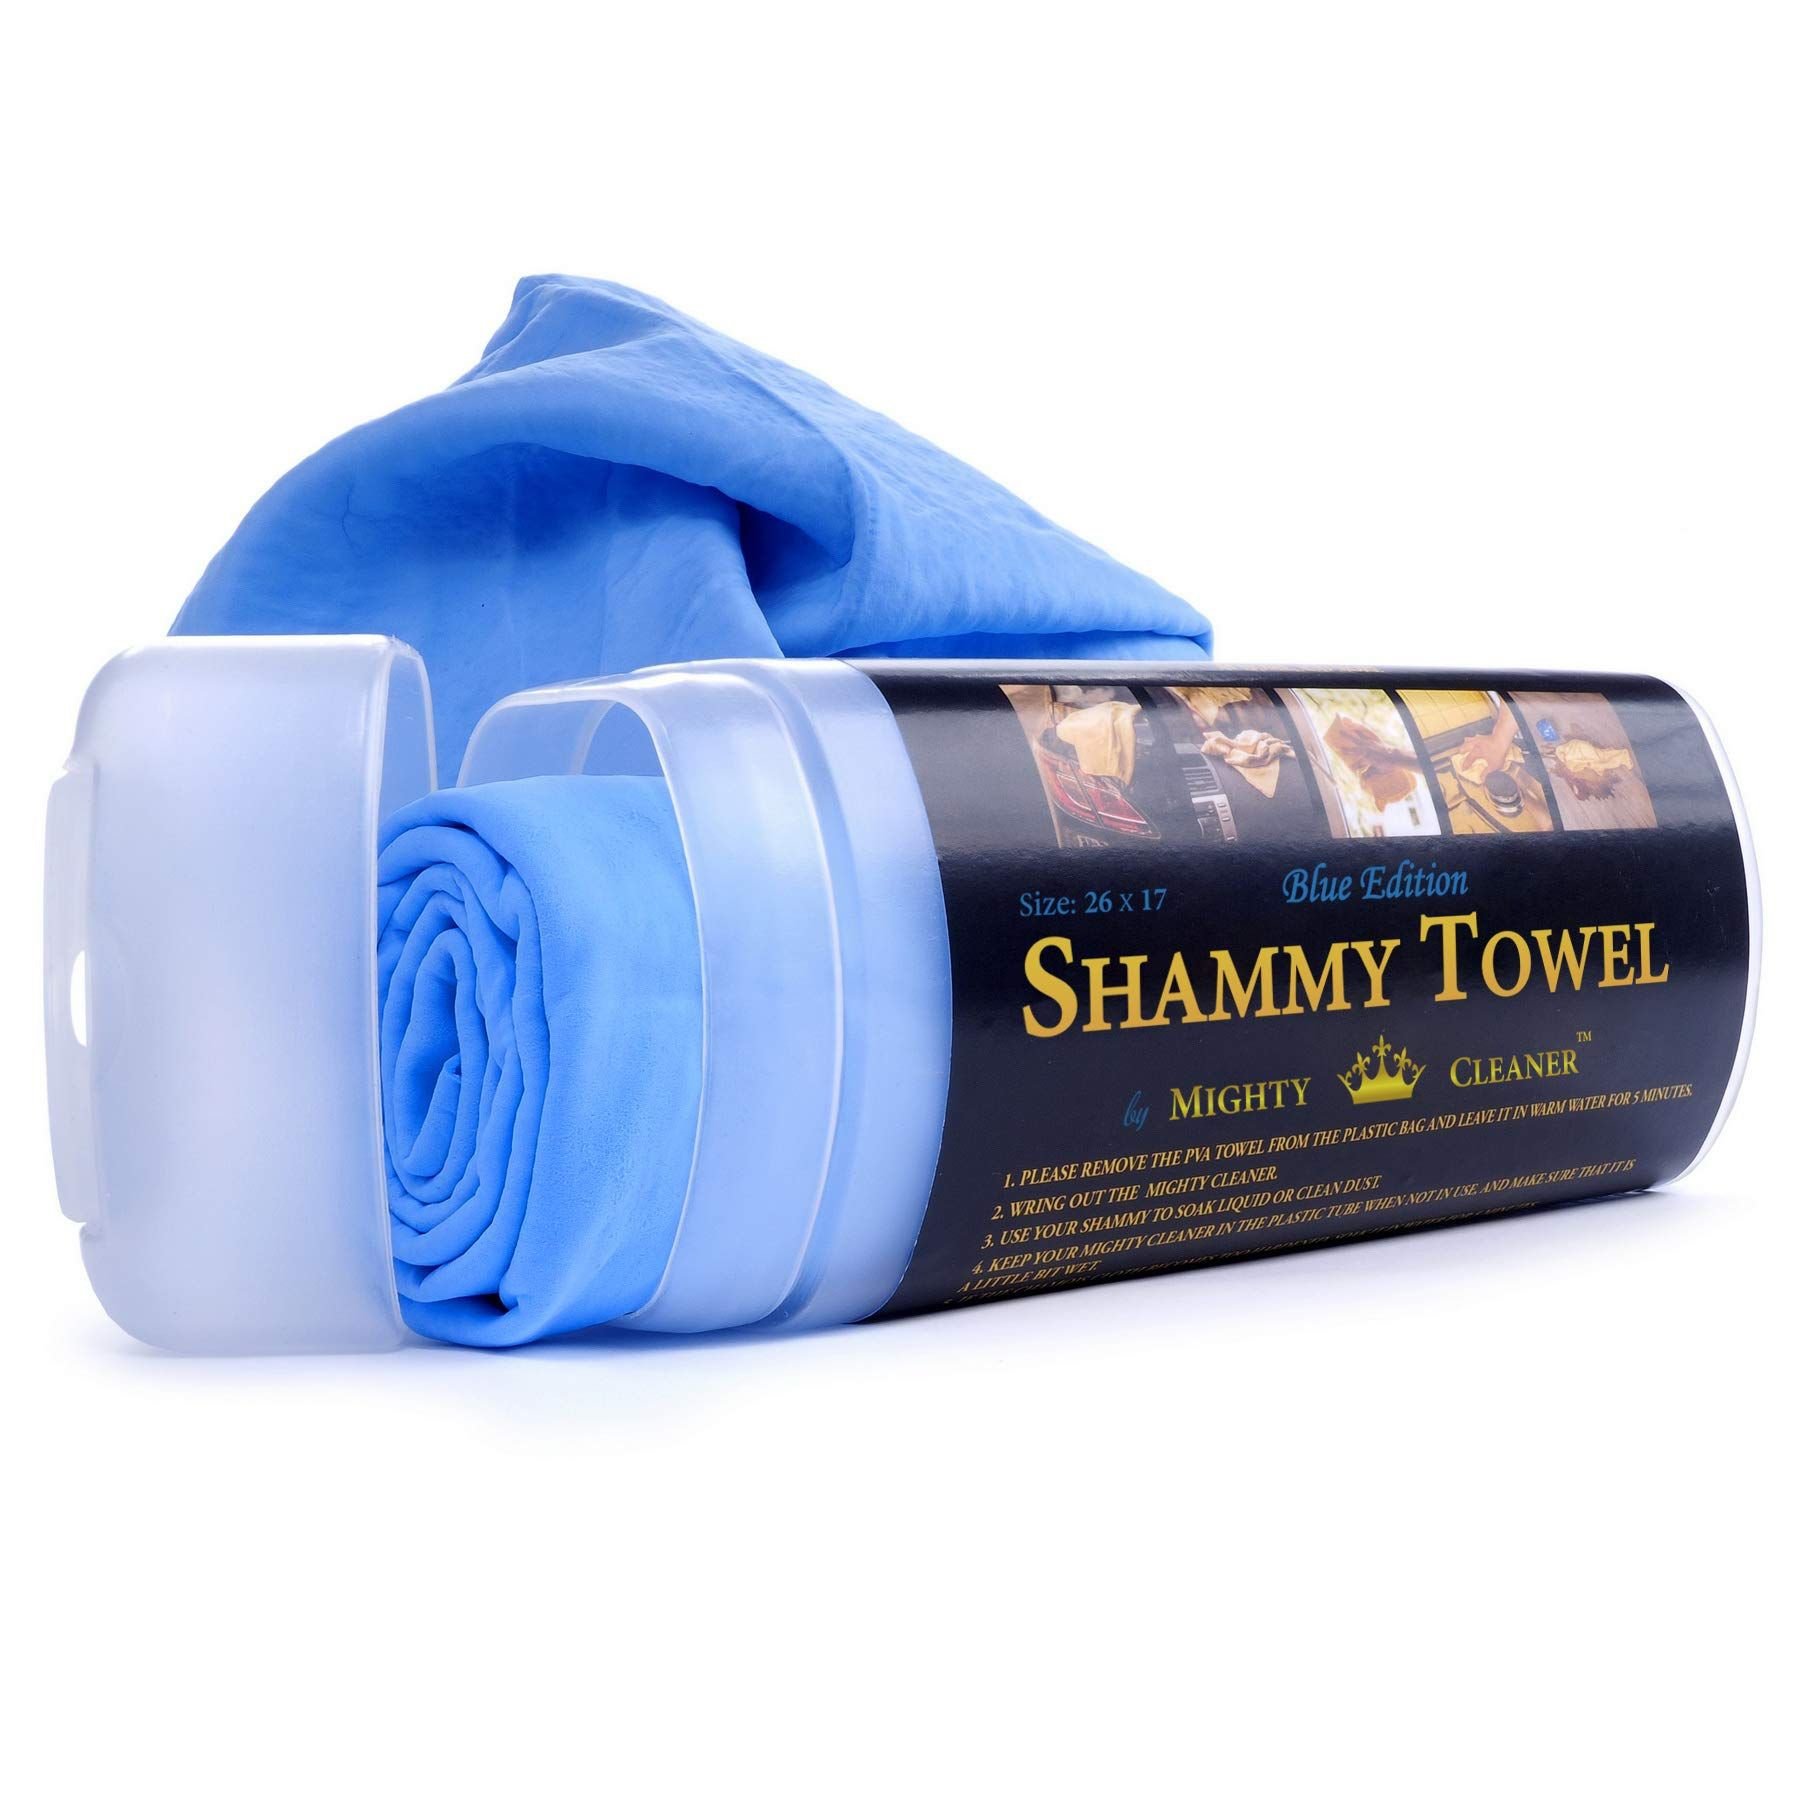 Mighty Cleaner Car Drying Towel 26 X 17 Chamois Cloth For Car Original Shammy Towel For Car Ad Drying Sponsored T Drying Towels Car Cleaning Towel